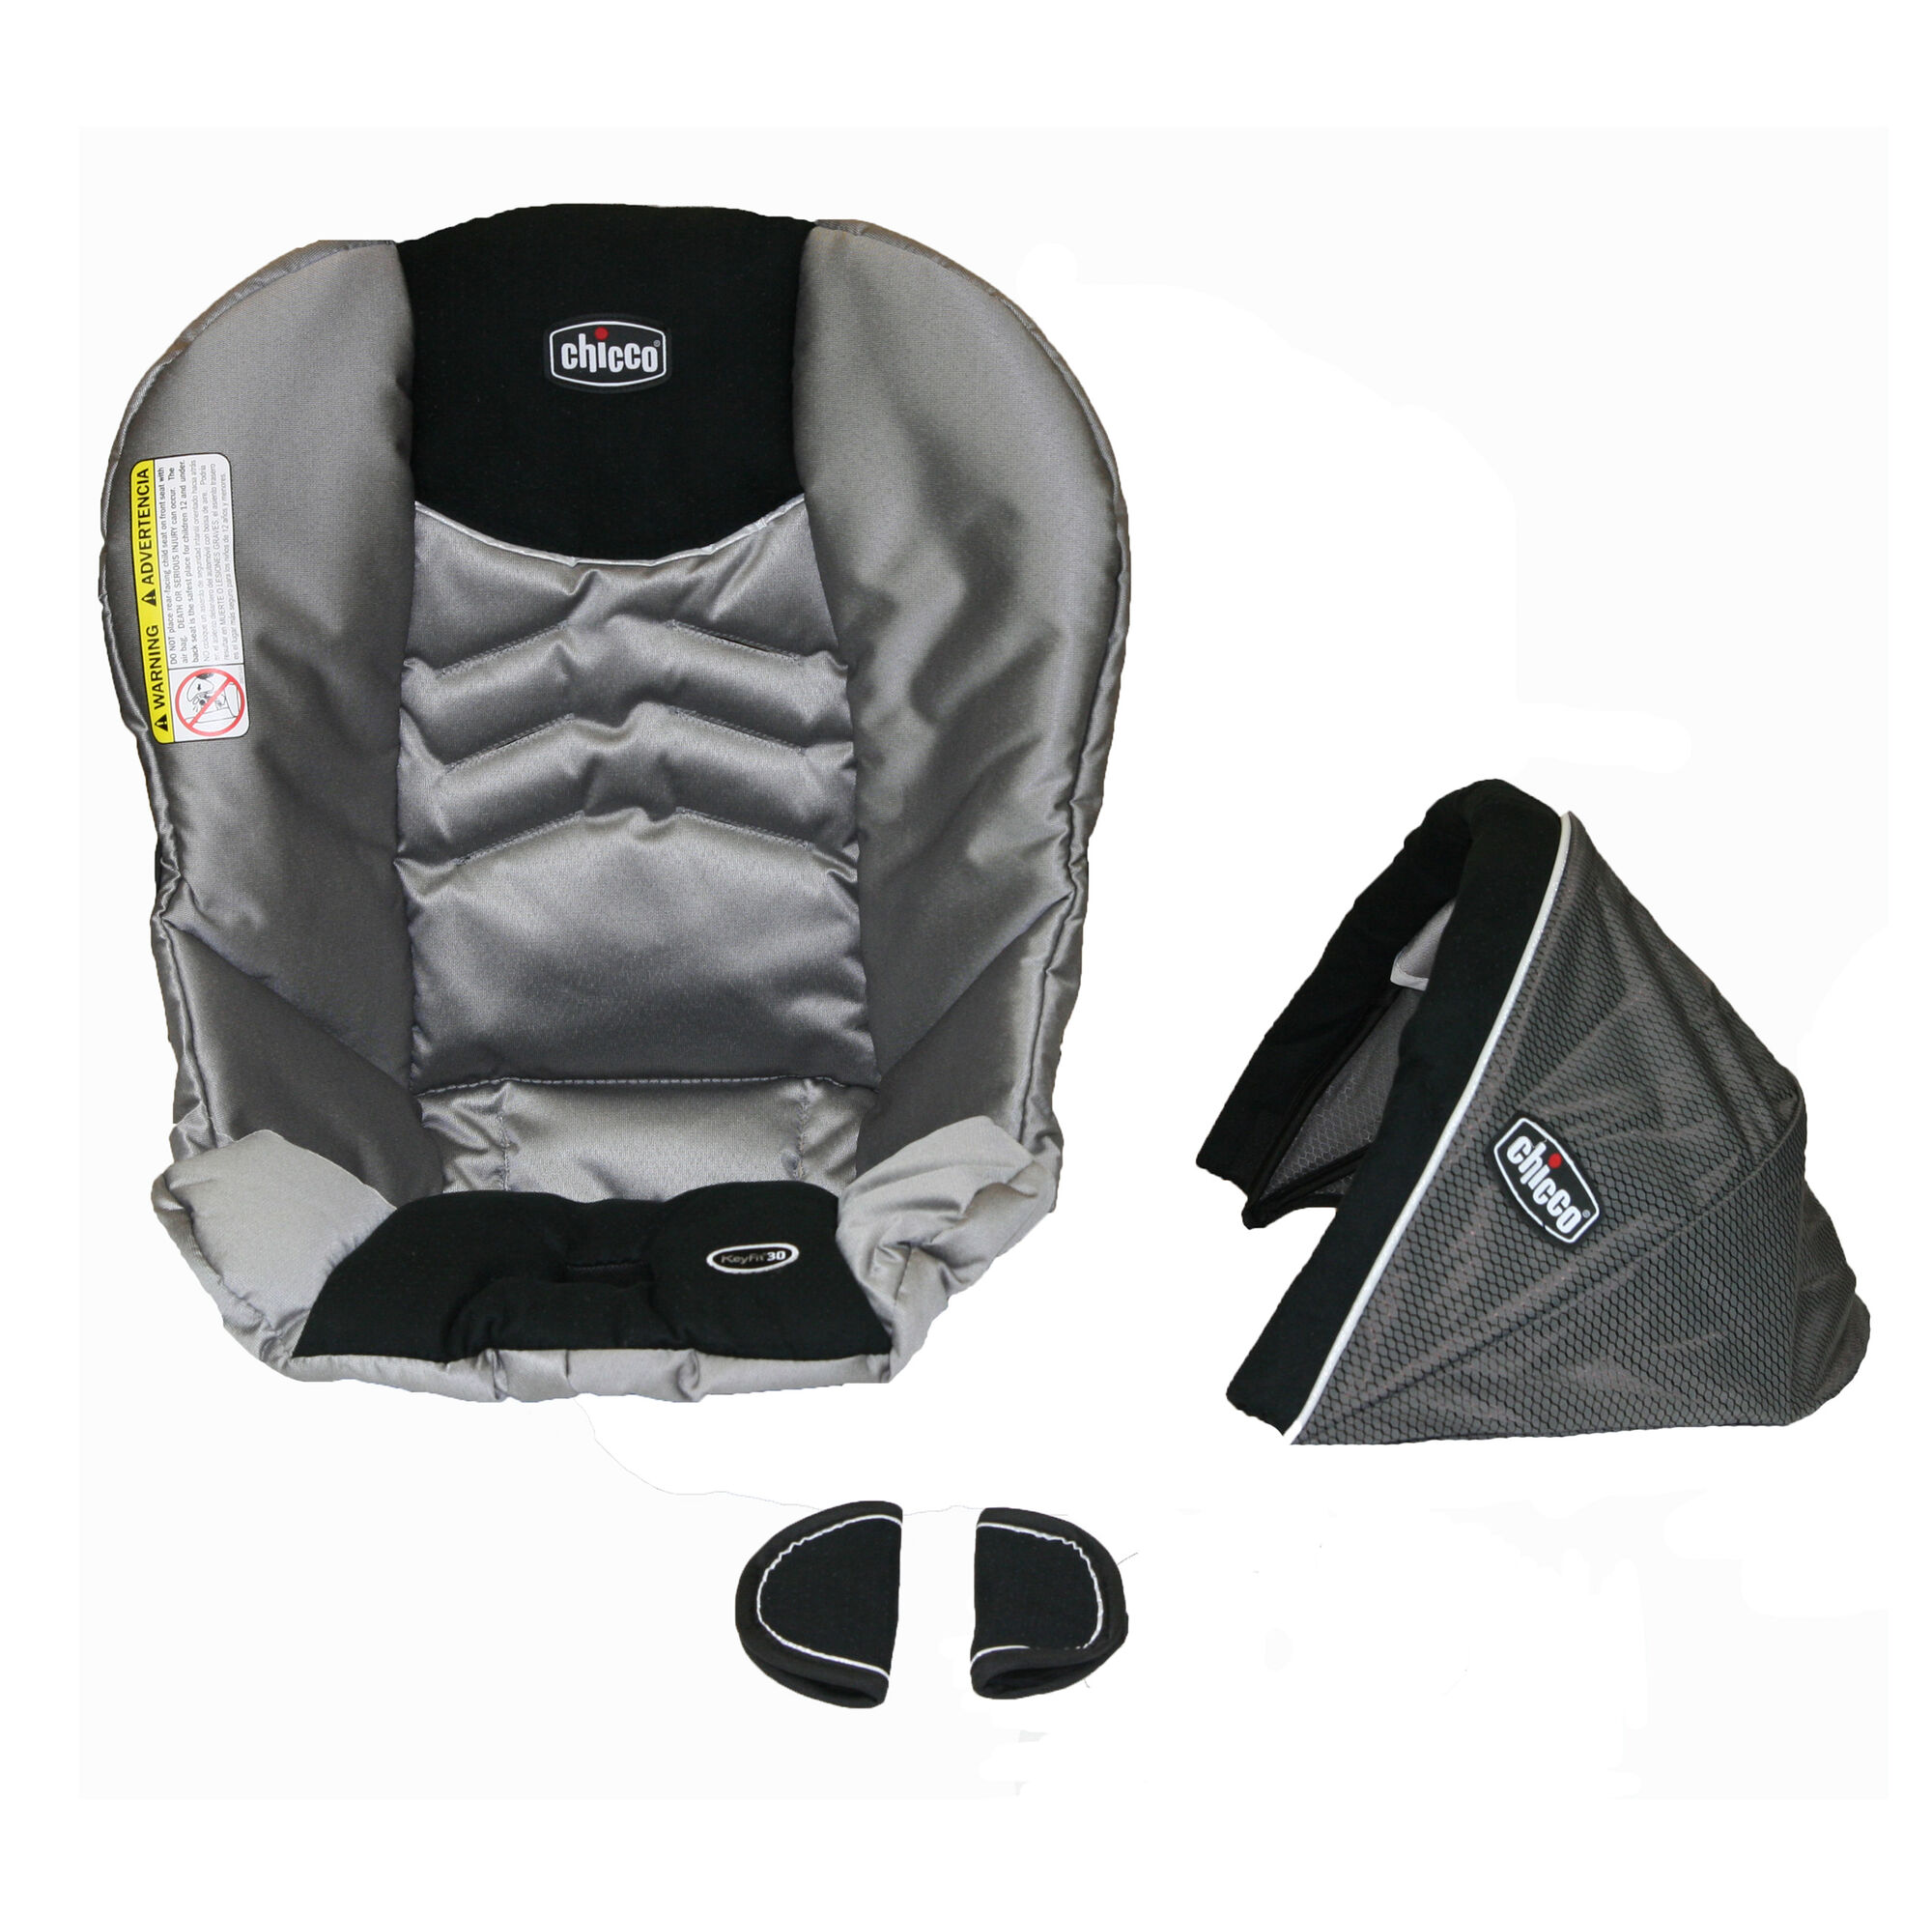 Infant Car Seat Cover Fits Chicco